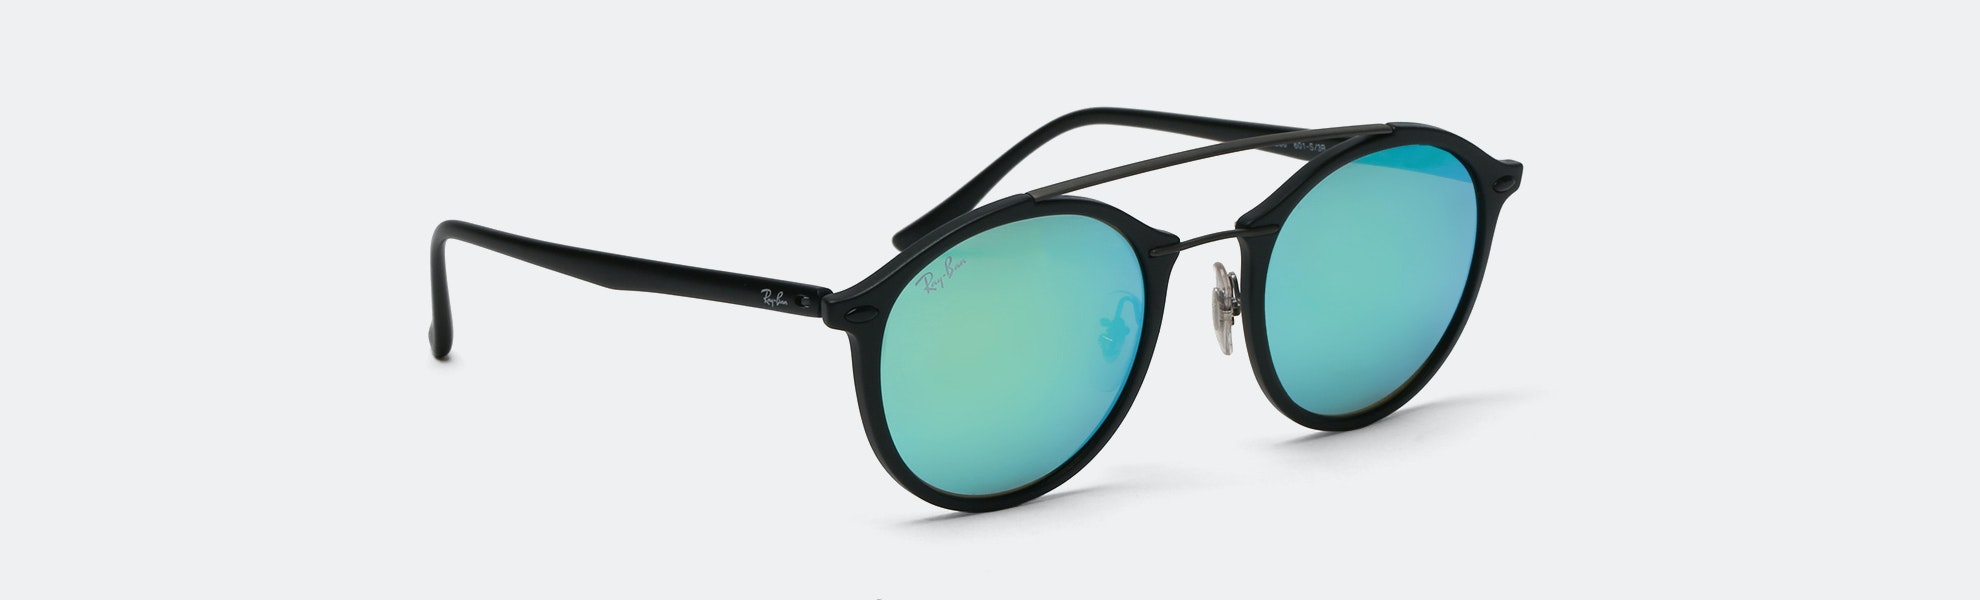 Ray-Ban RB 4266 Mirrored Sunglasses